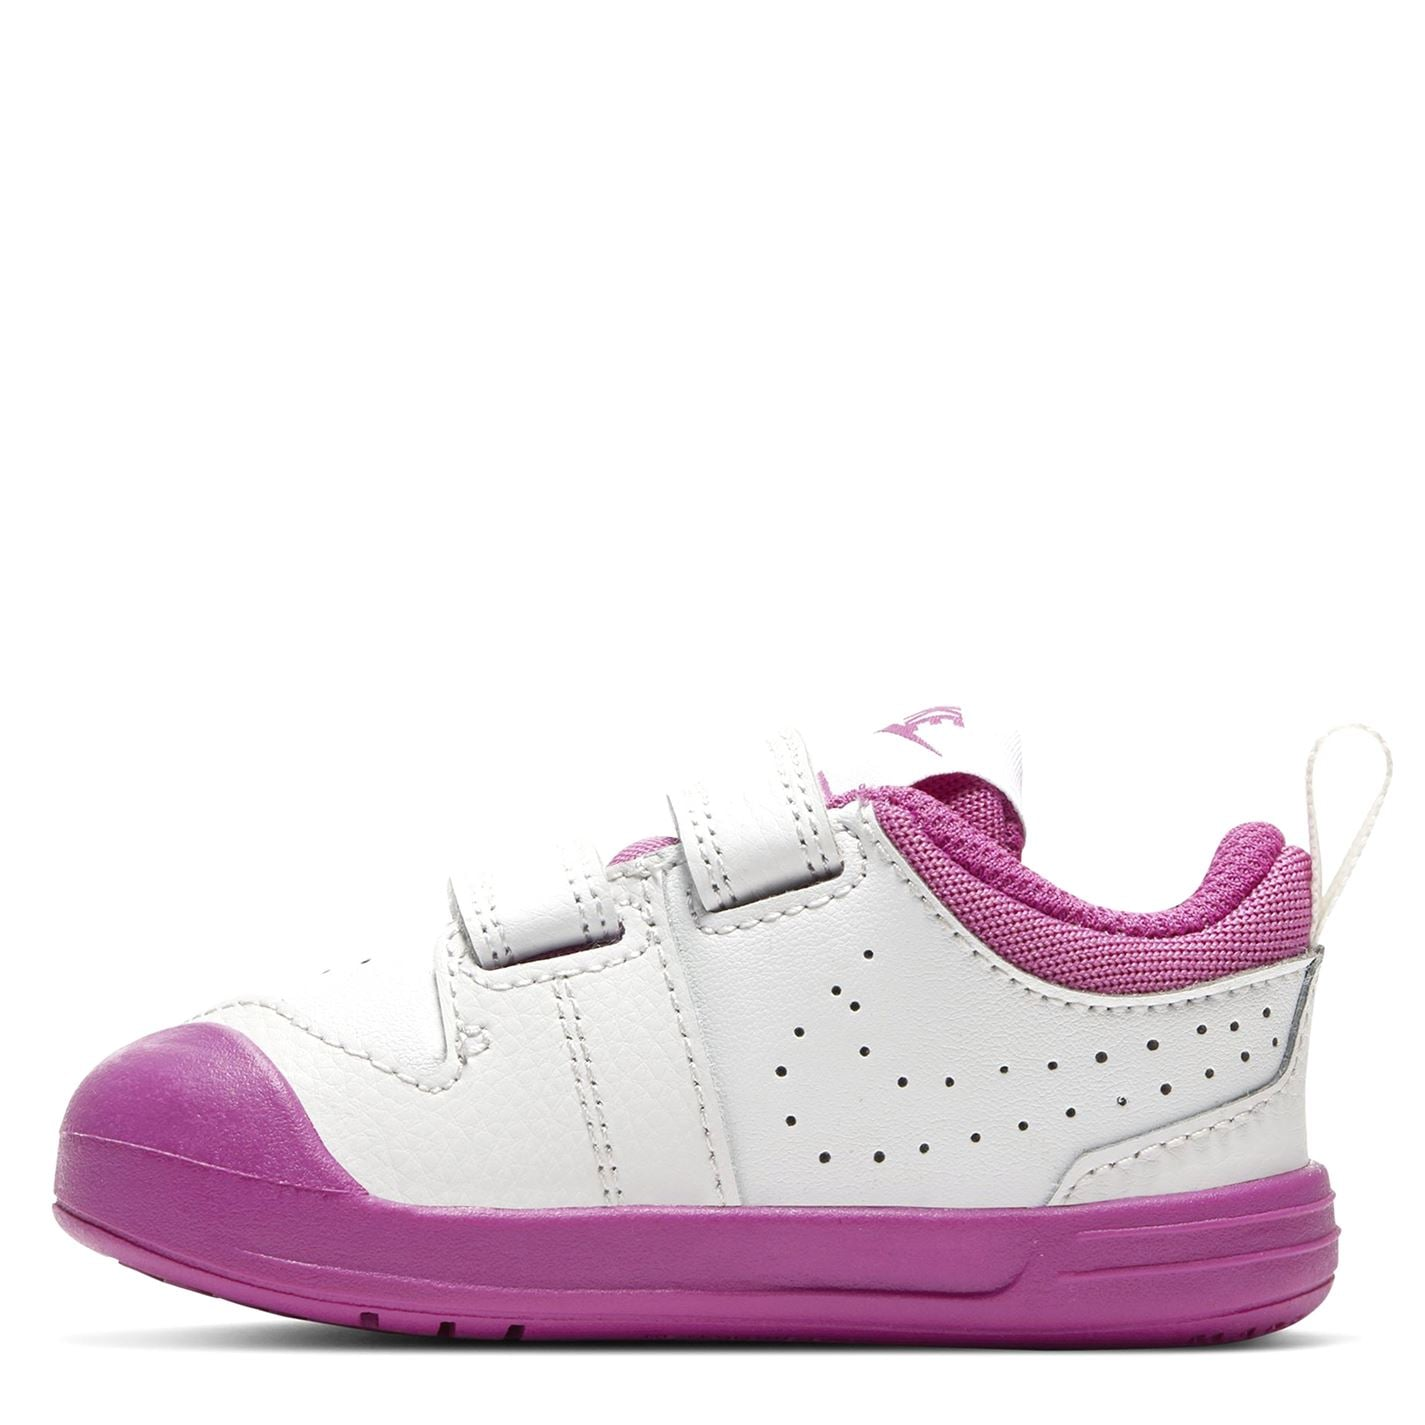 Nike Pico 5 Infant/Toddler Shoe Platin/Wht/Pink